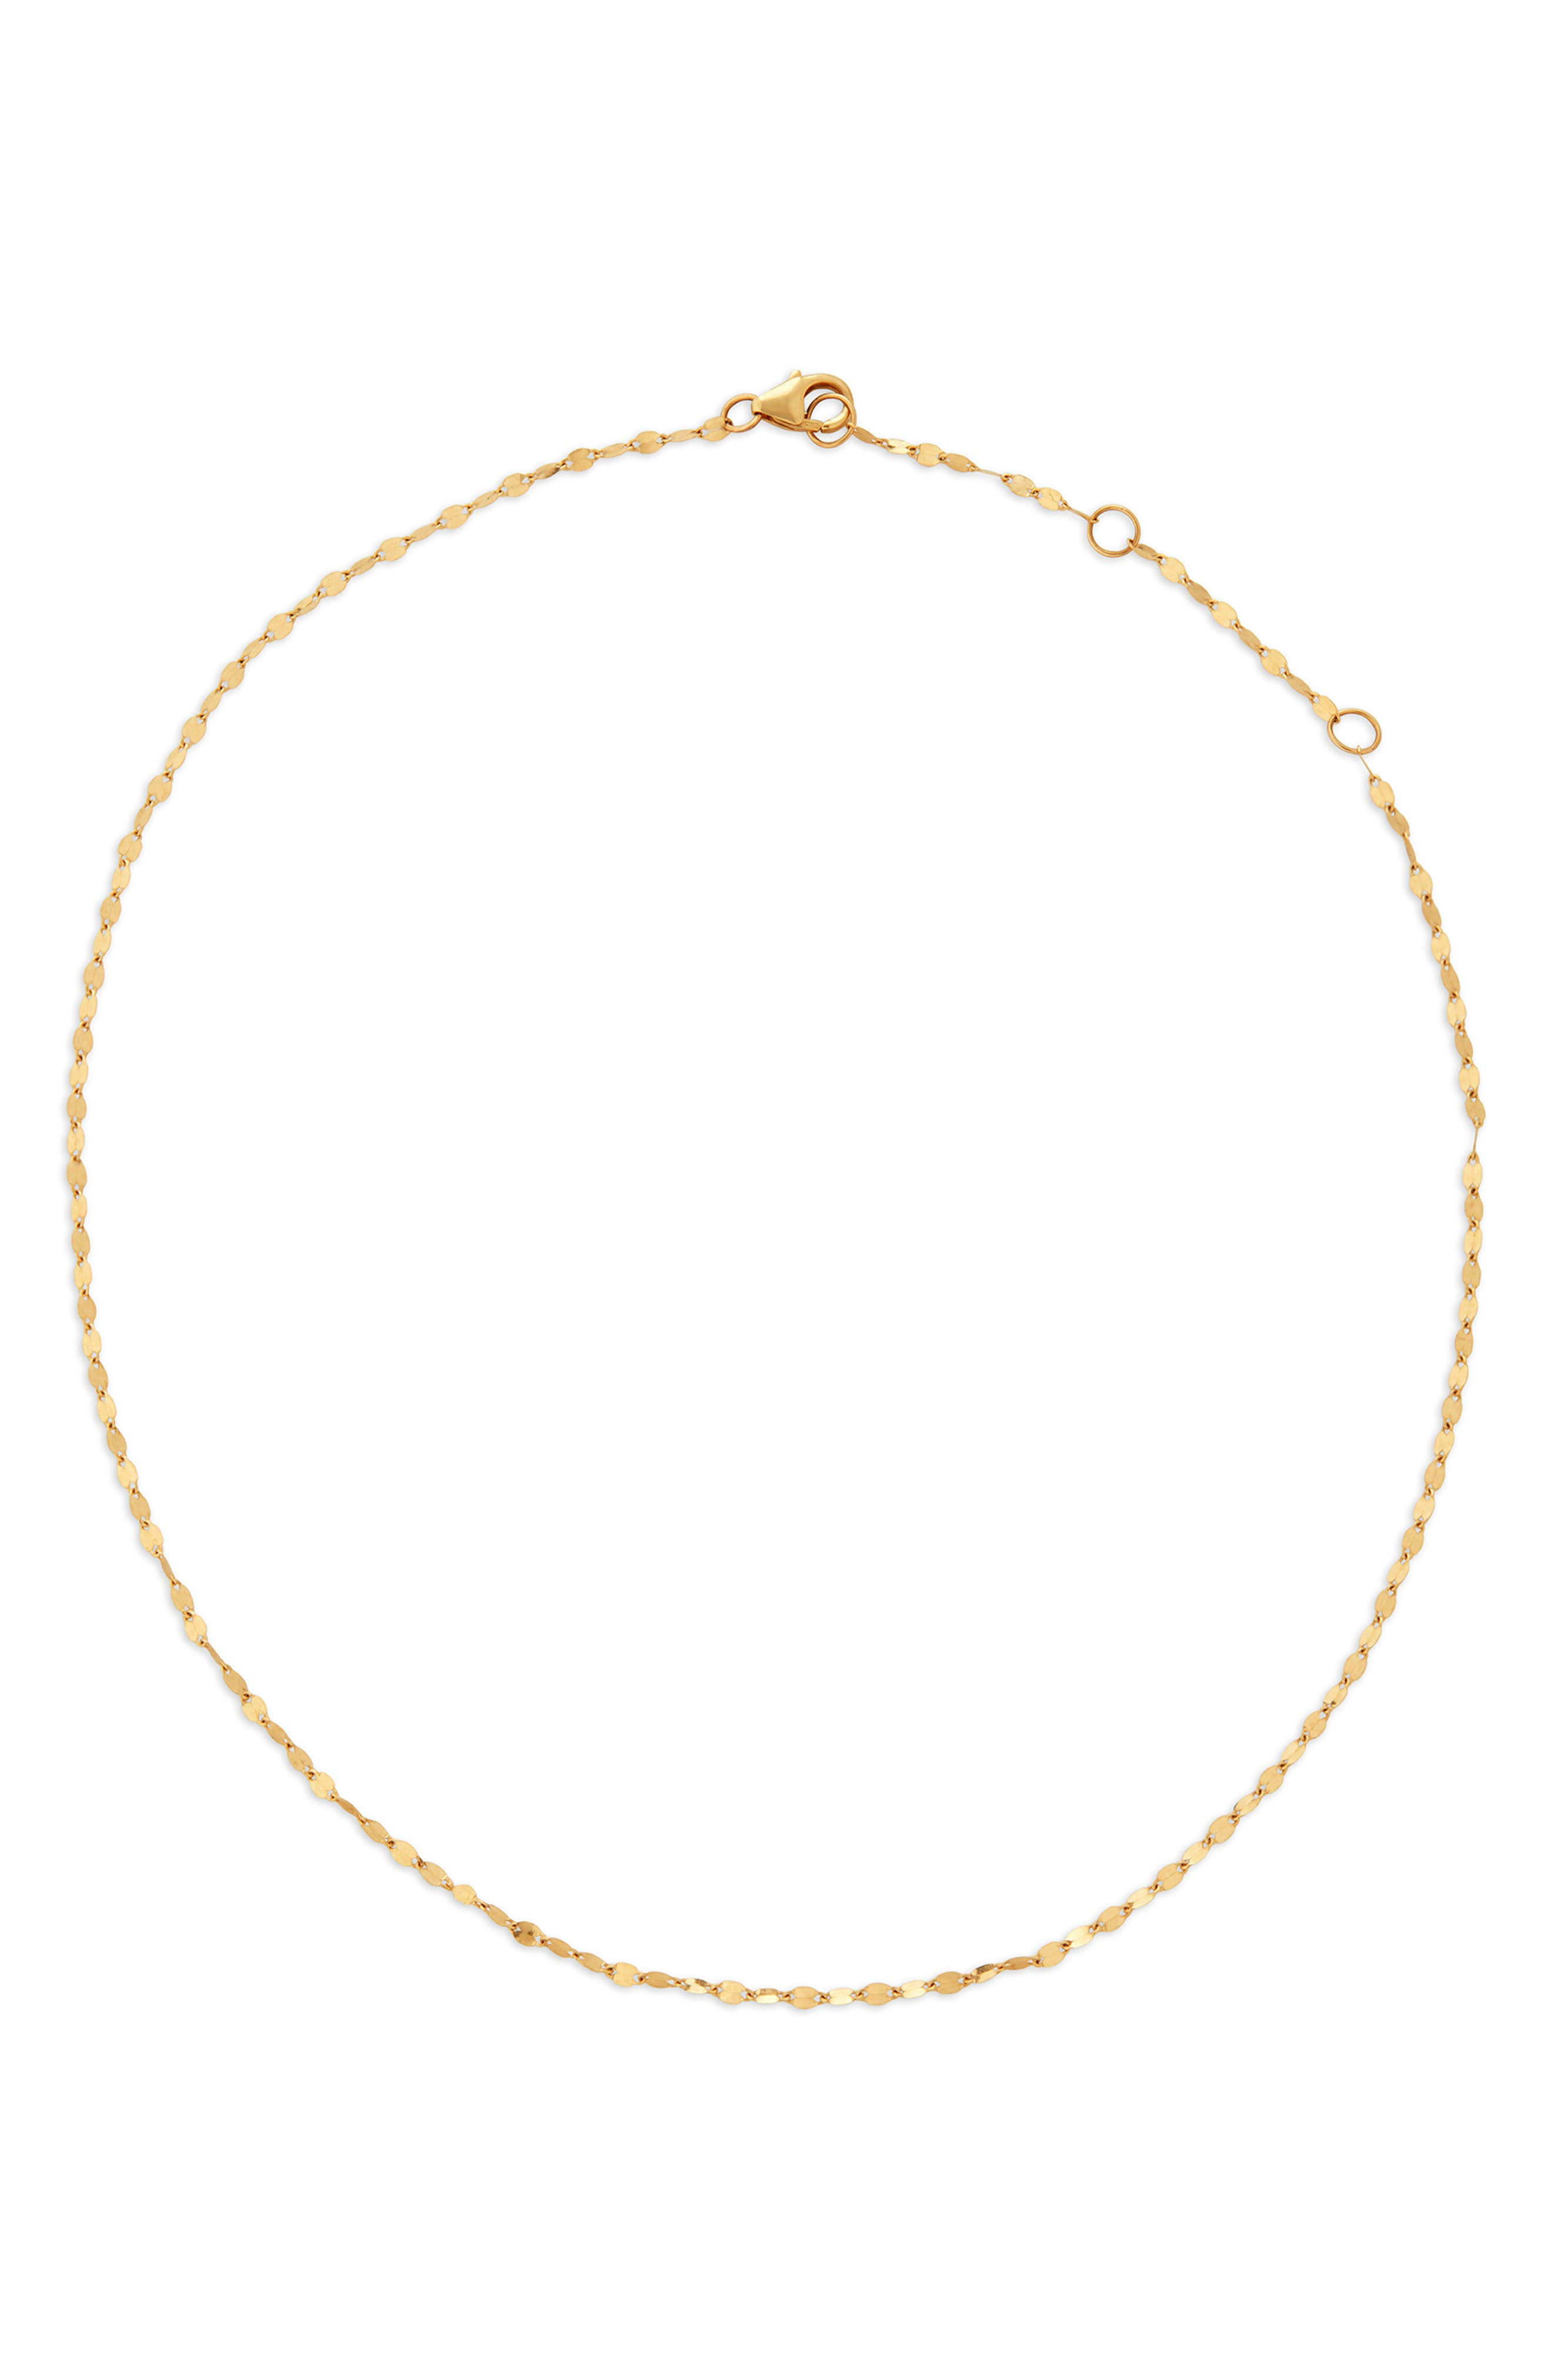 Blake Chain Choker Necklace,                             Main thumbnail 1, color,                             Yellow Gold